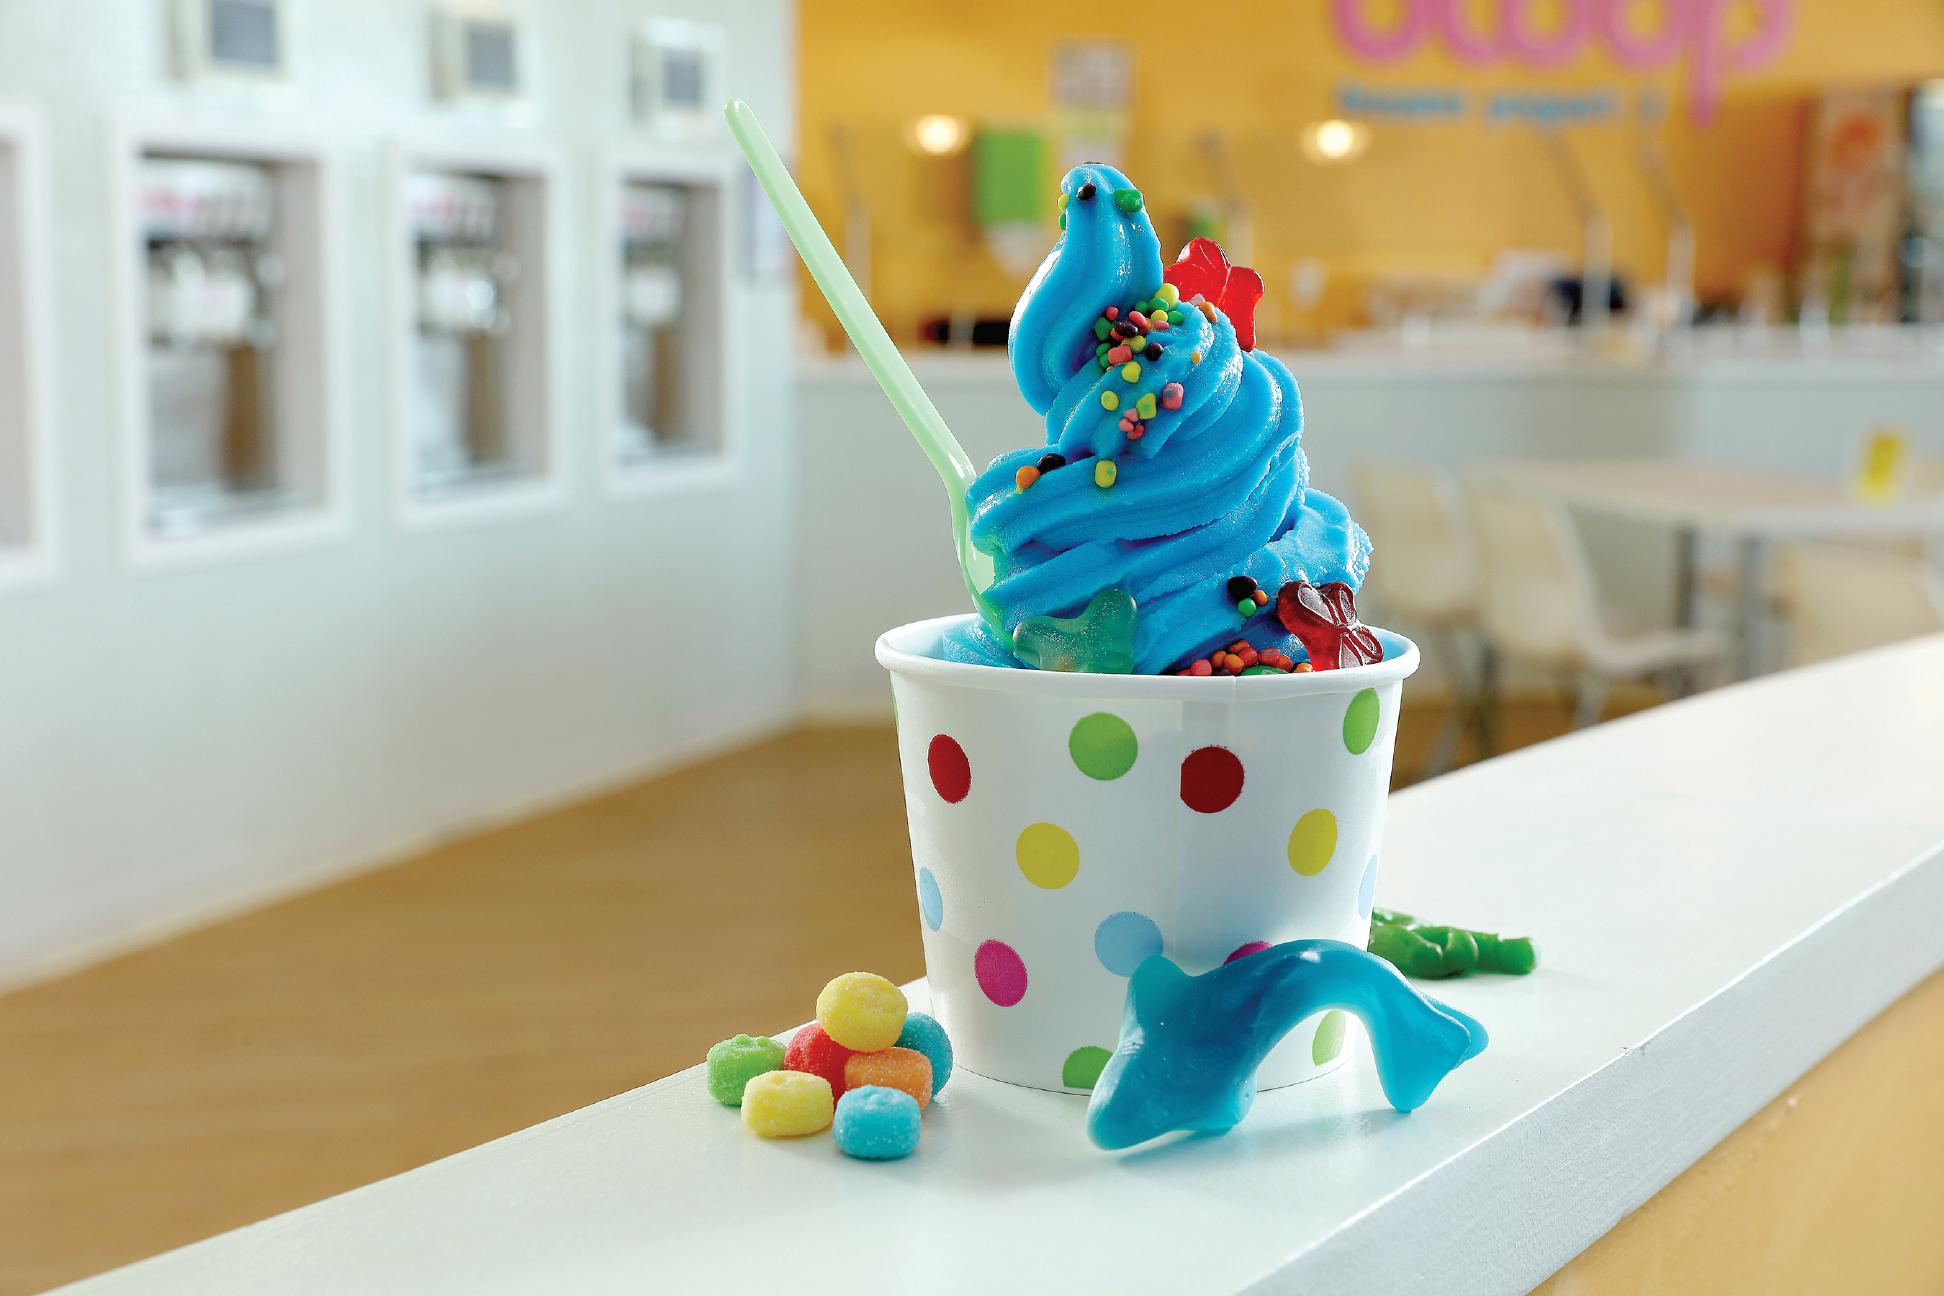 Bloop Frozen Yogurt Photo by Mike Buck